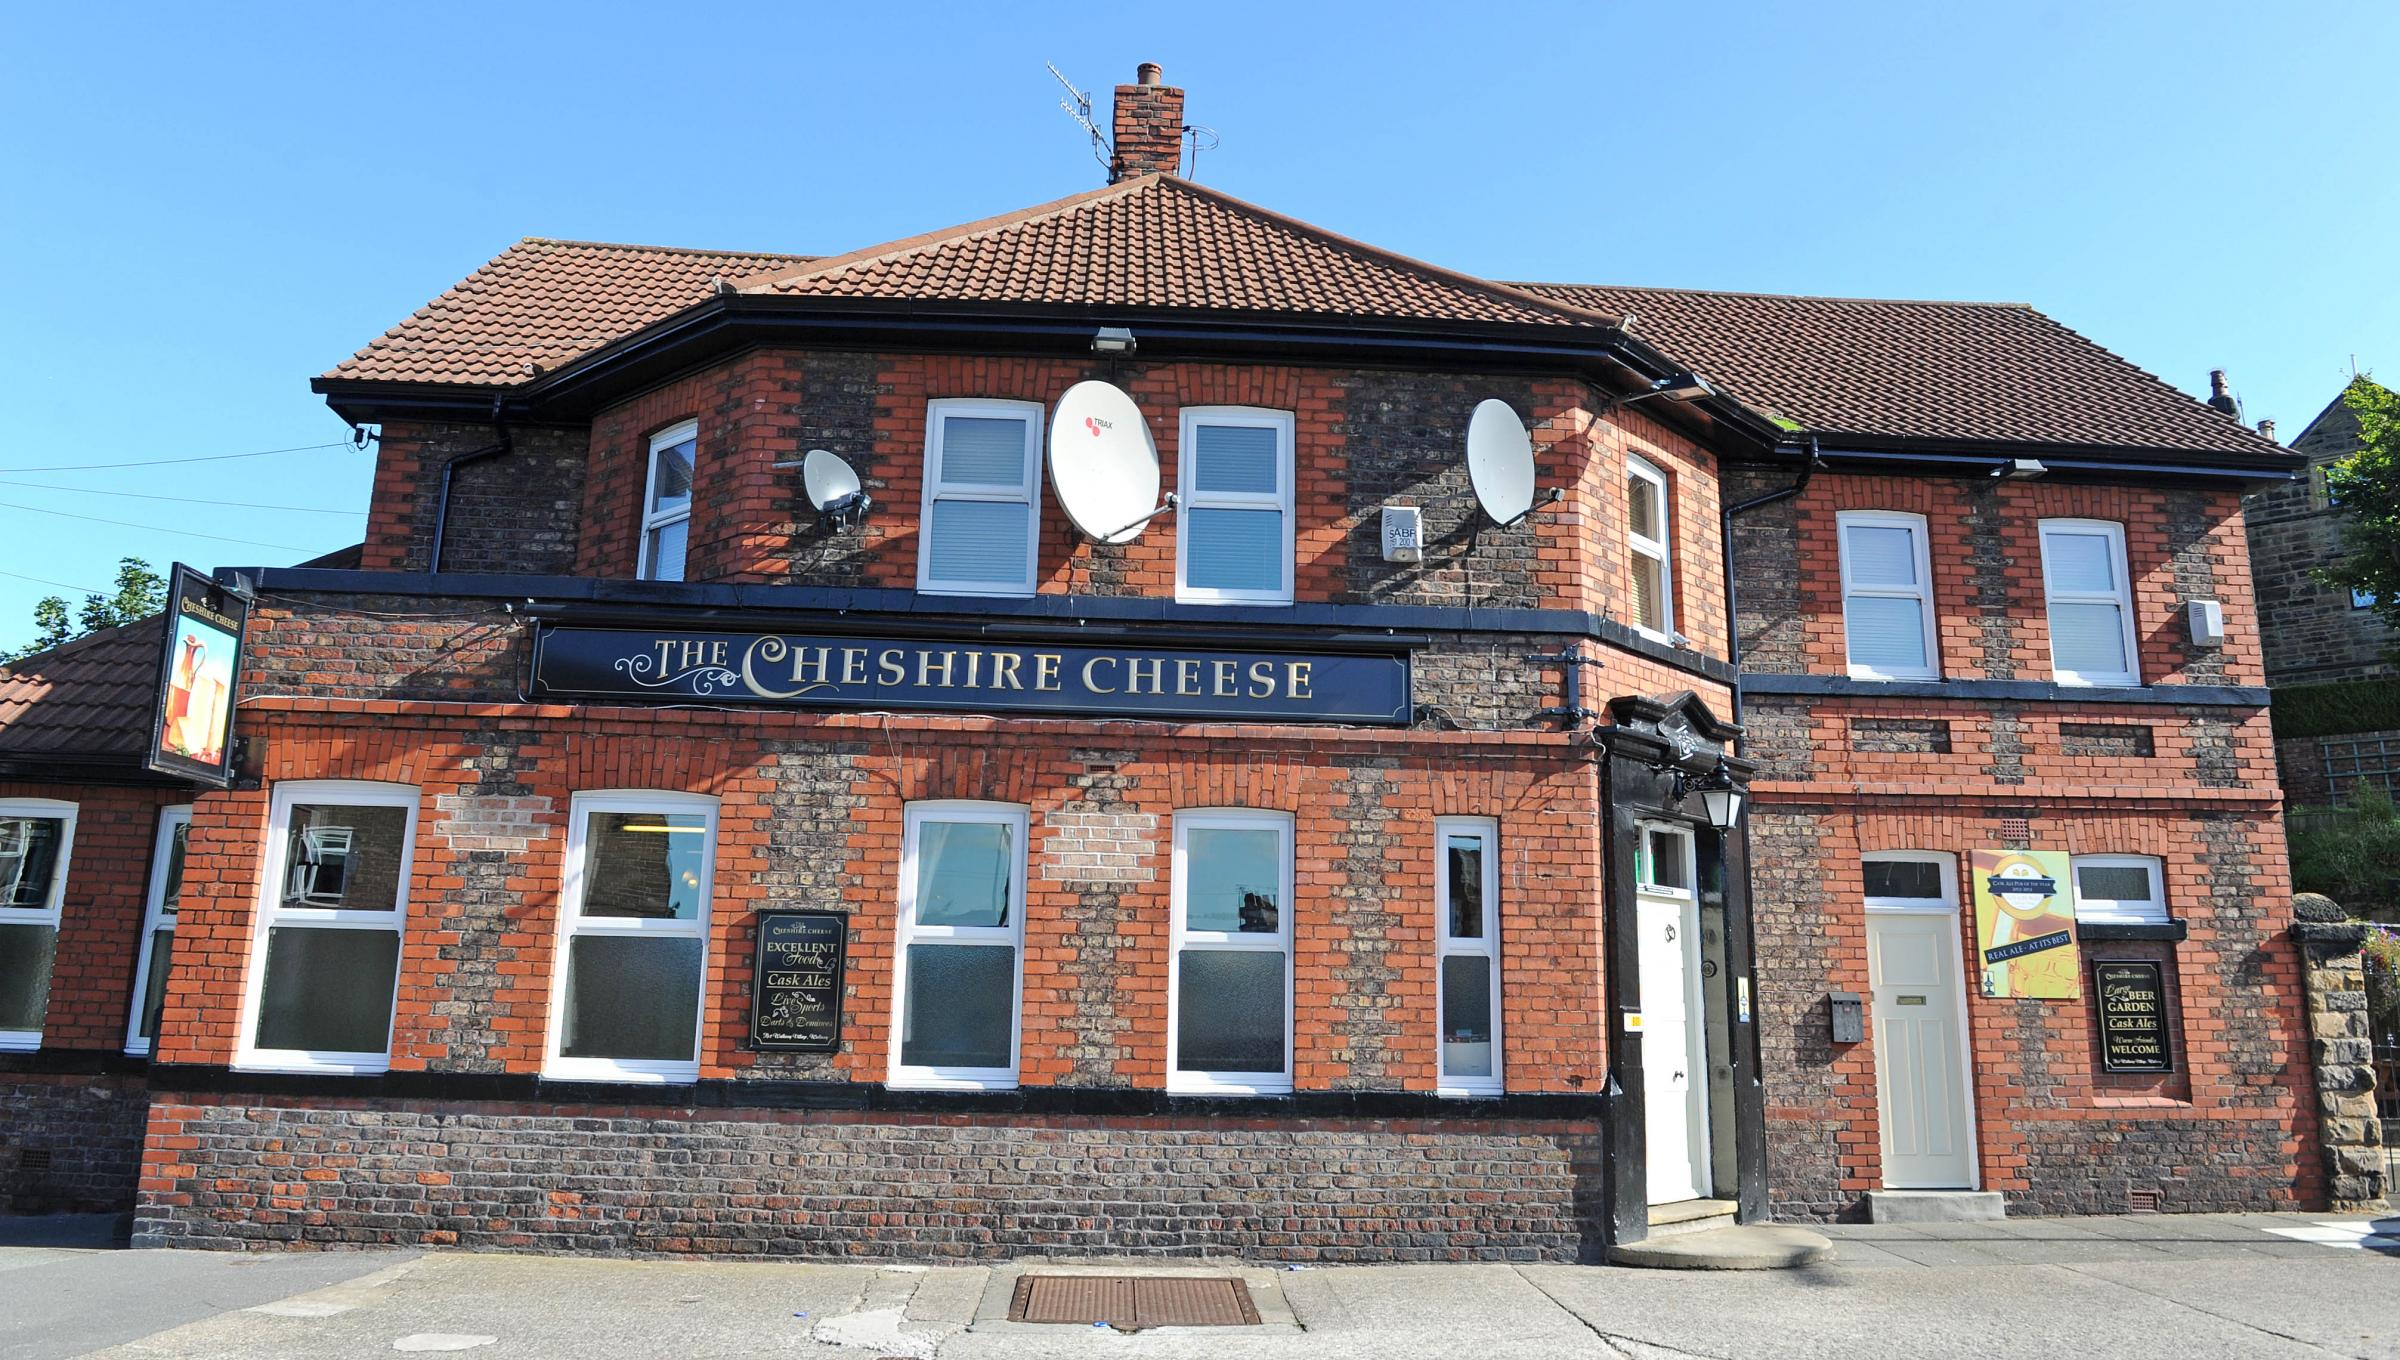 The Cheshire Cheese pub in Wallasey Village was broken in to over the weekend.